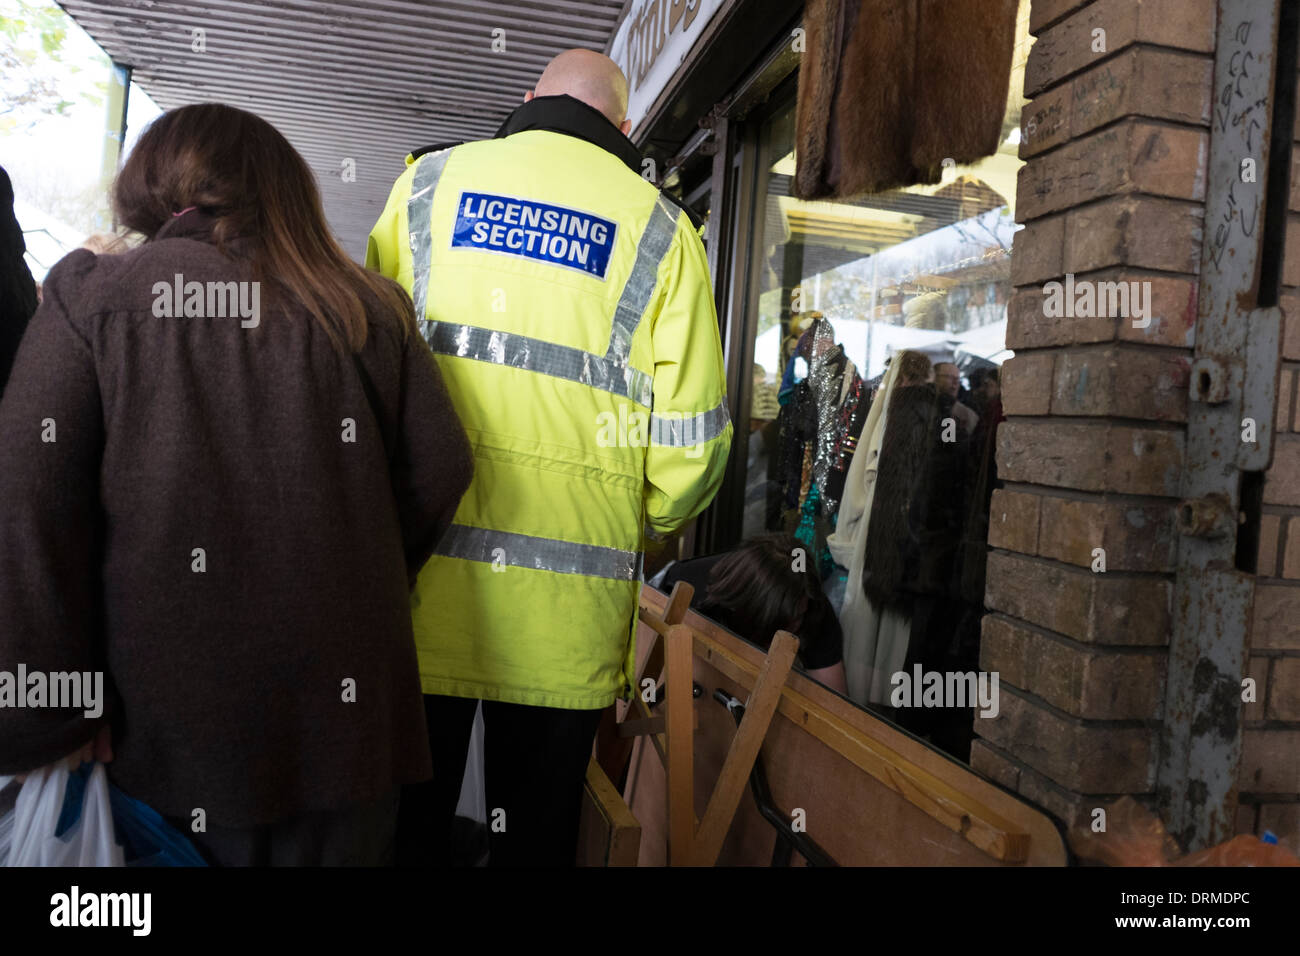 Council Trading Standards Licensing Officer Raid - Stock Image